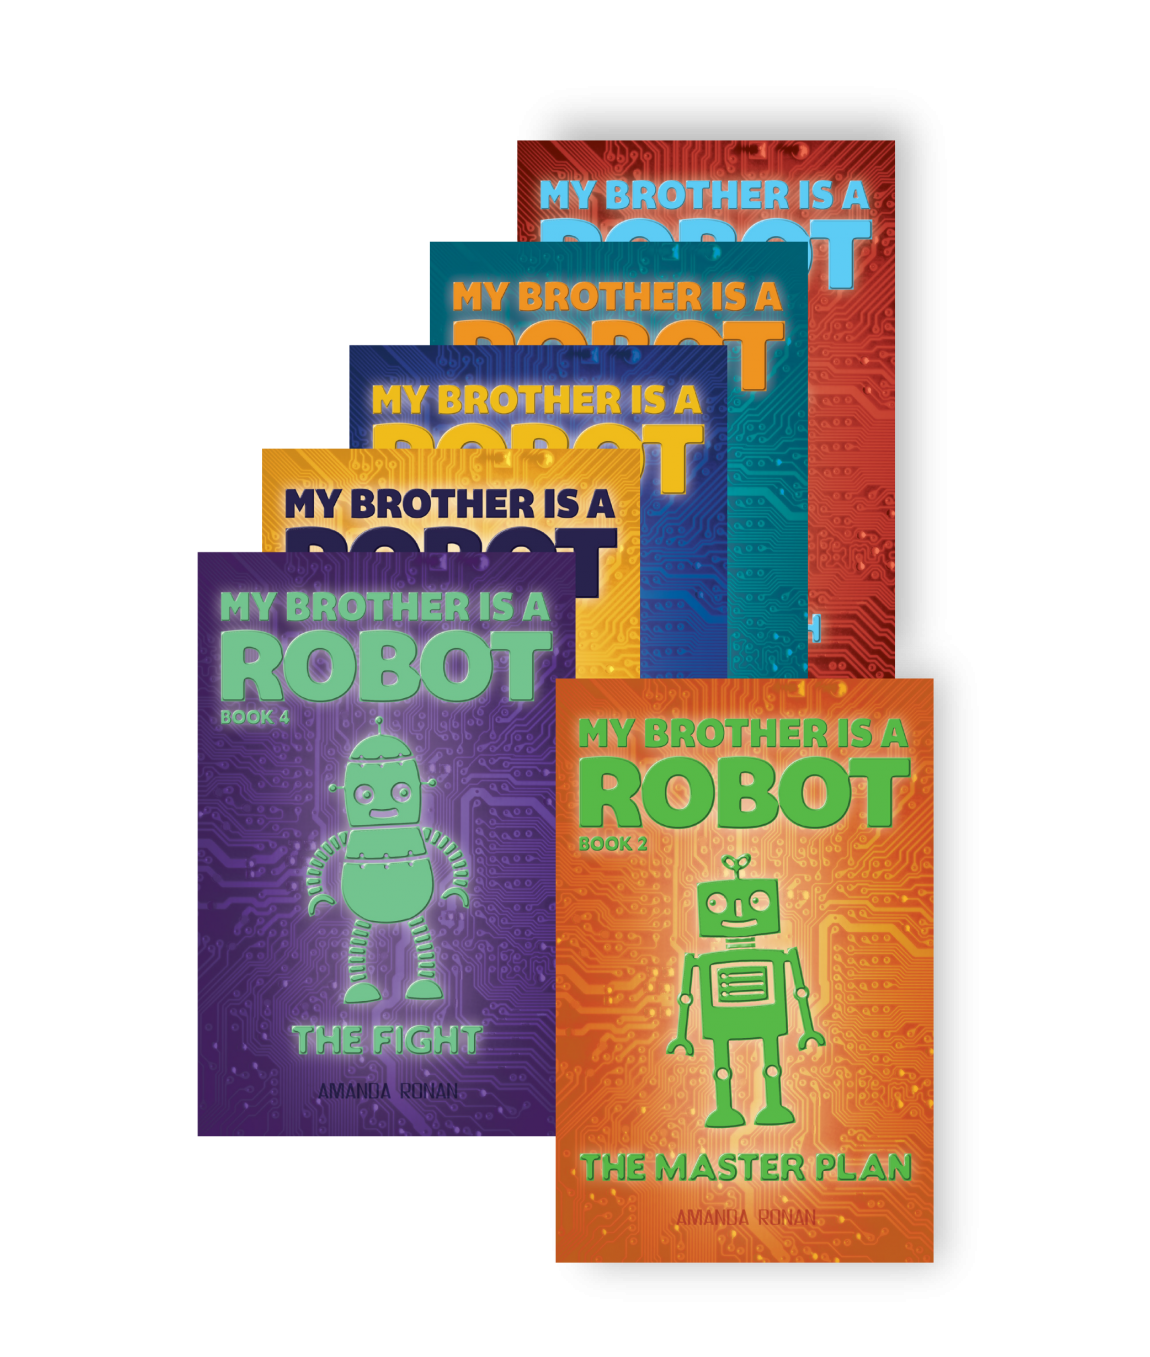 My-Brother-Is-A-Robot-Series-Covers-01.png